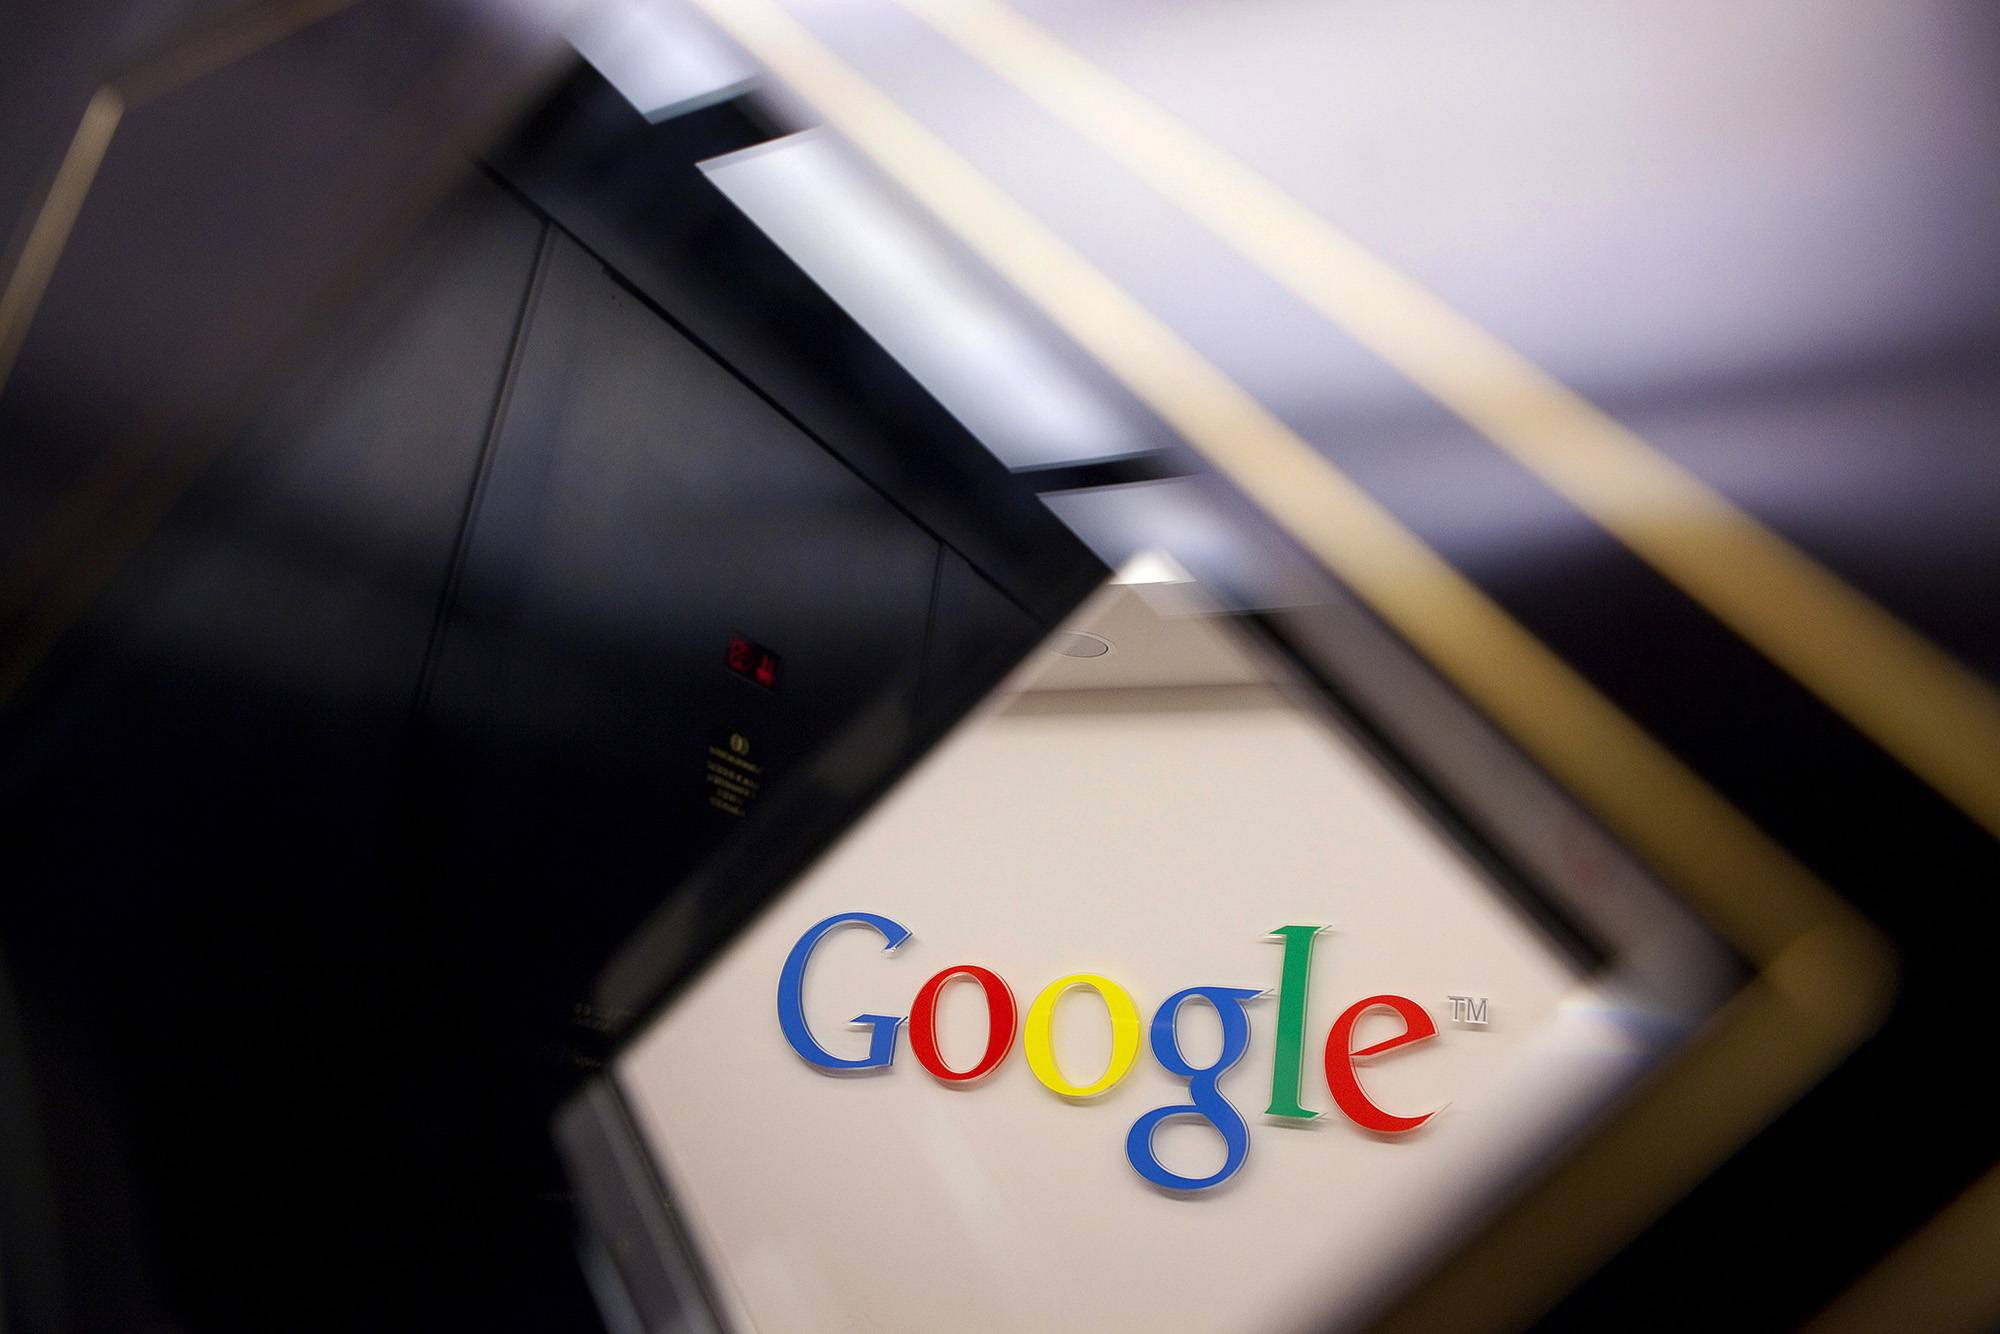 Google is expanding Android as an underlying software foundation as it ramps up against Apple Inc., Amazon.com Inc. and others to be a digital gatekeeper to consumers. The more that Google can connect devices, vehicles and other items with its software, the more likely it is that consumers will stick with the company for all their needs.